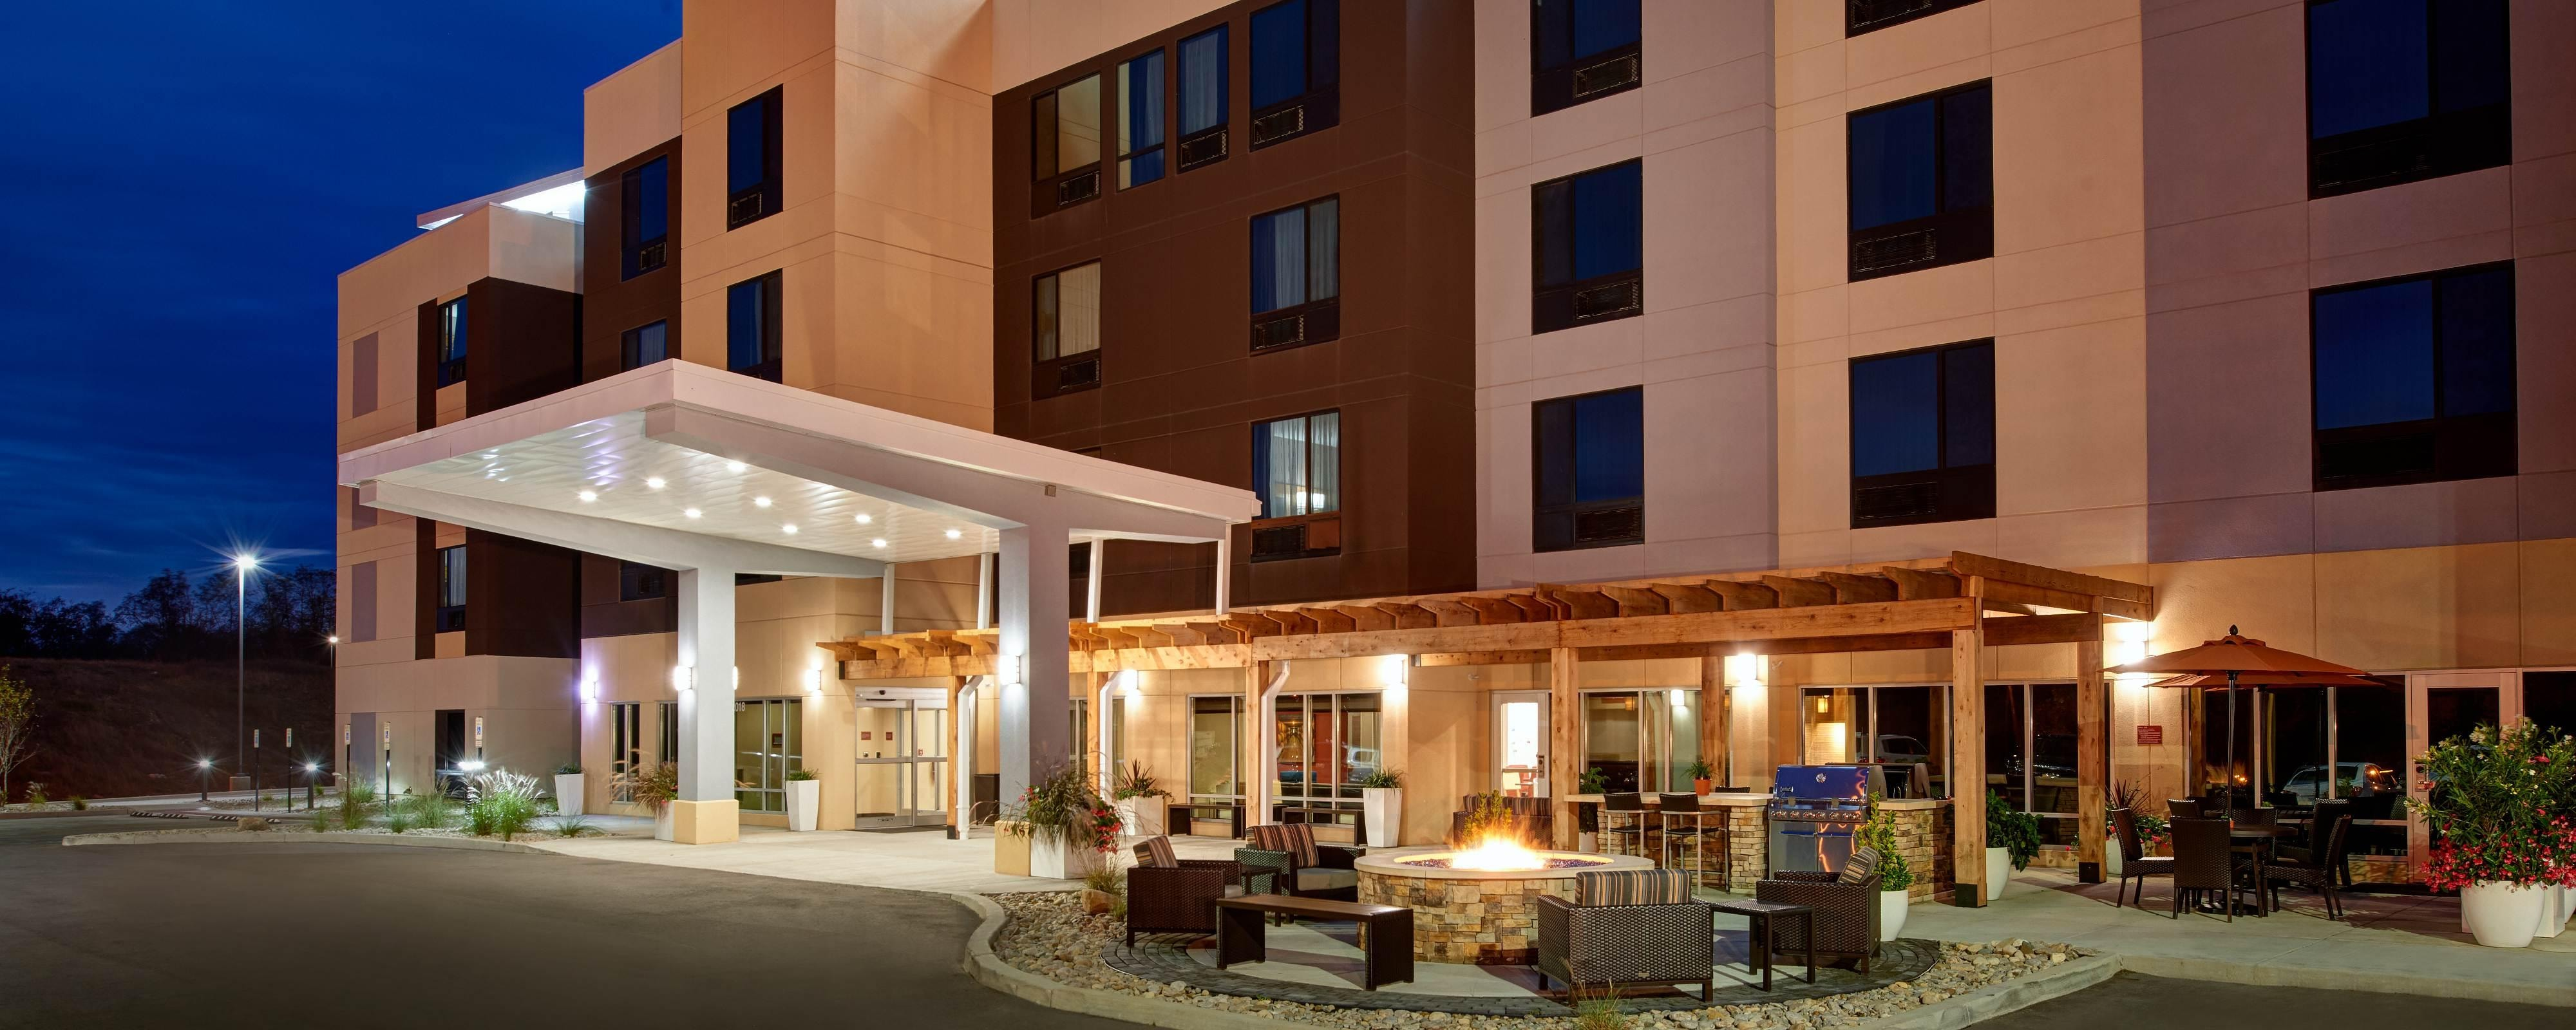 TownePlace Suites Richmond: Richmond Long Term Stay Hotels